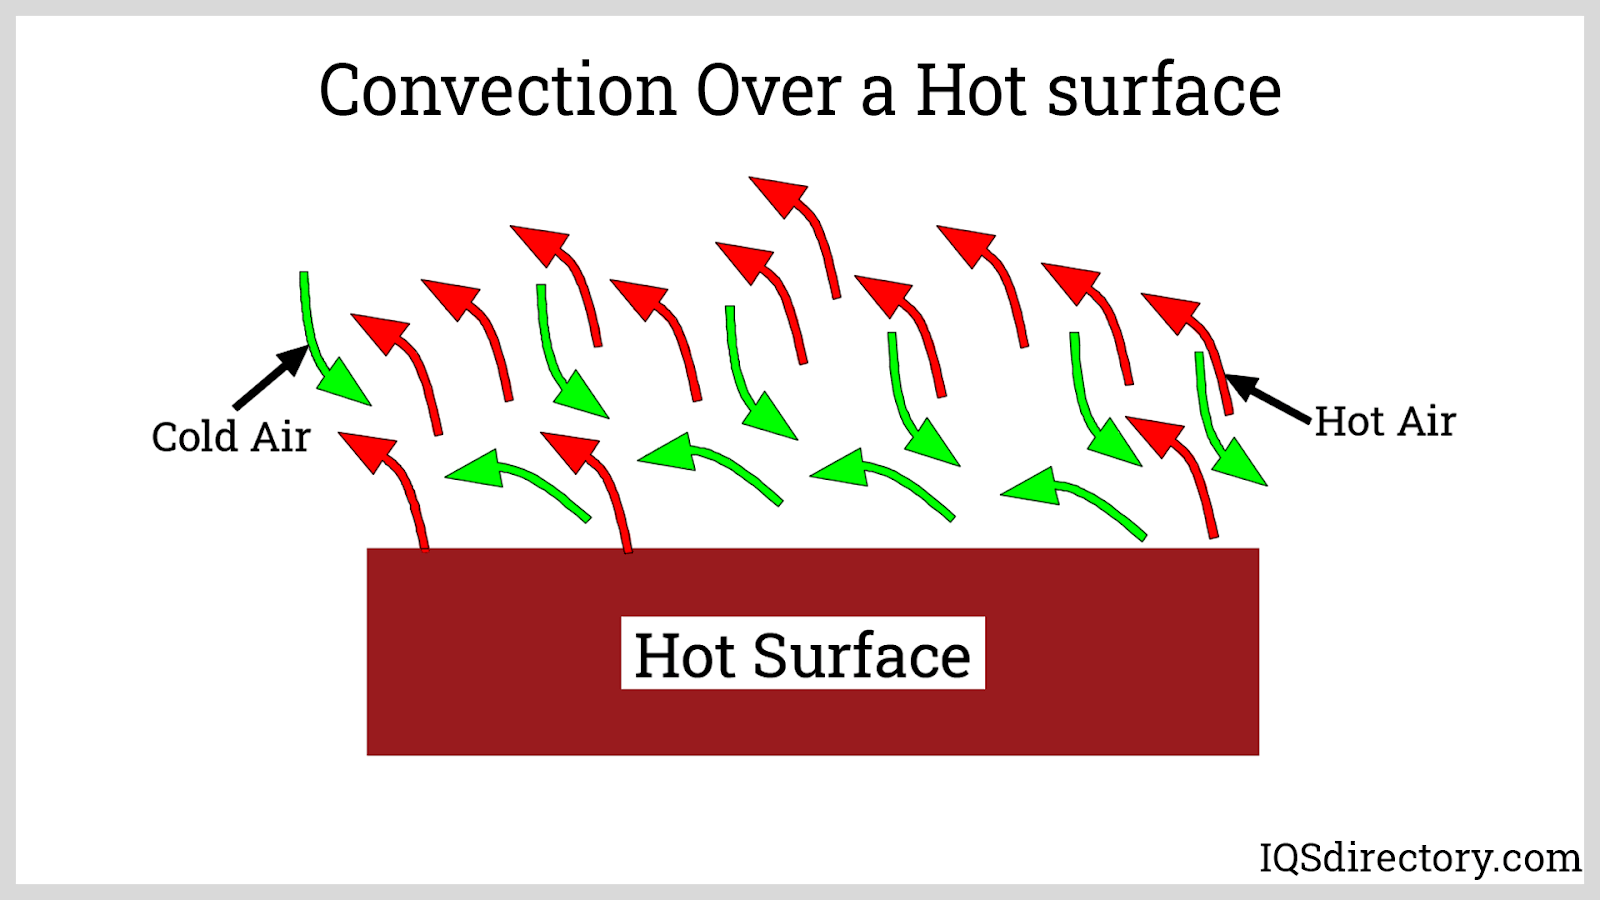 Convection Over a Hot surface